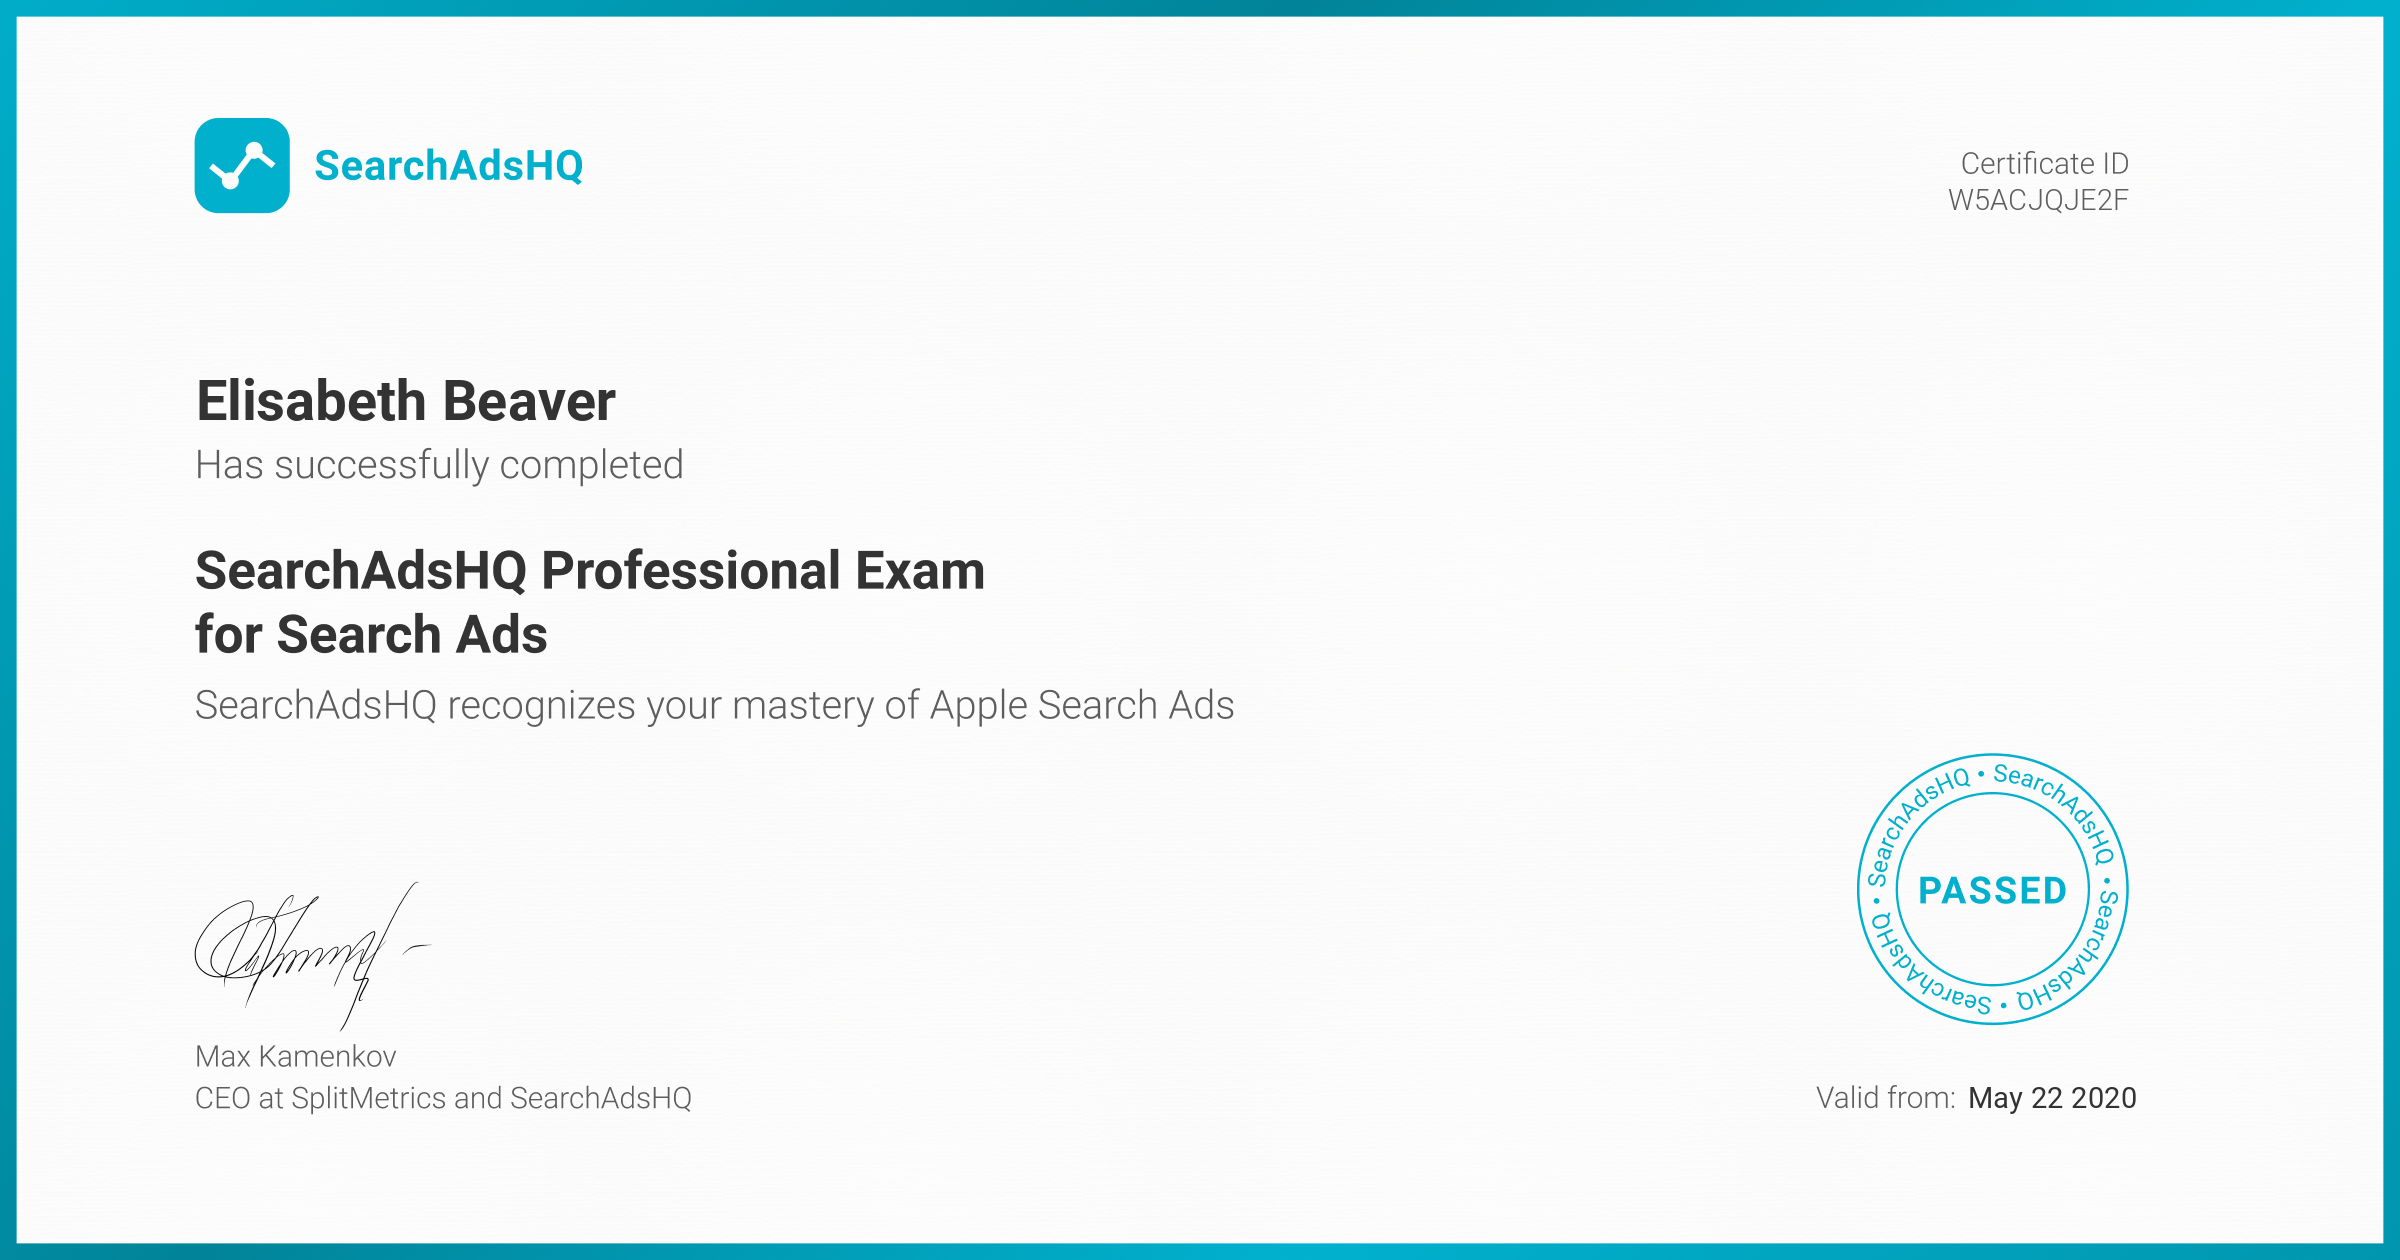 Certificate for Elisabeth Beaver | SearchAdsHQ Professional Exam for Search Ads